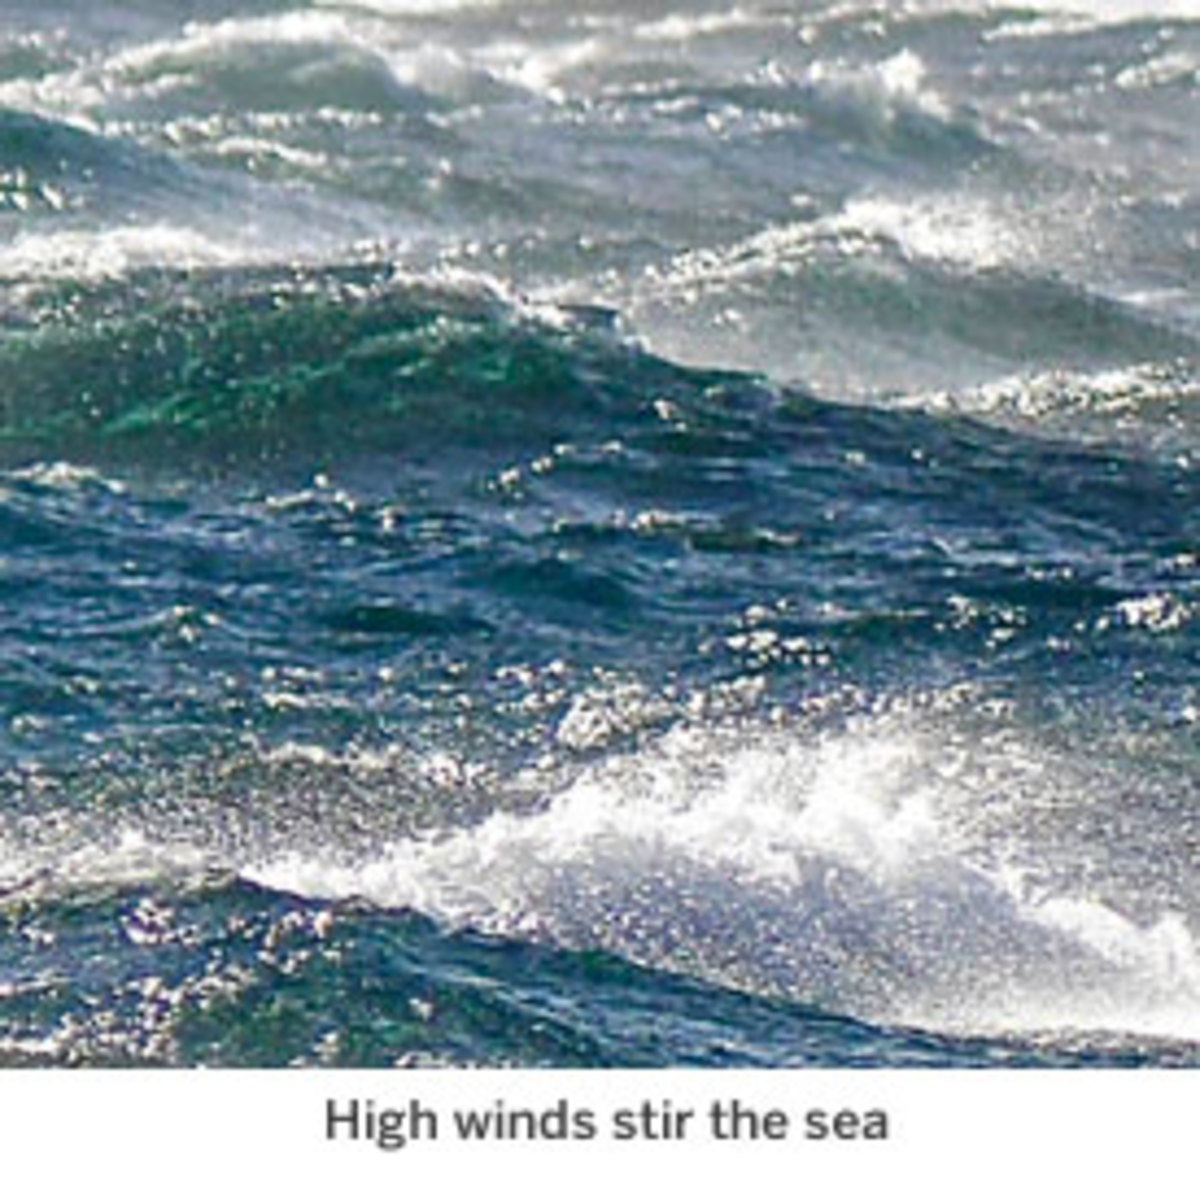 High winds stir the sea